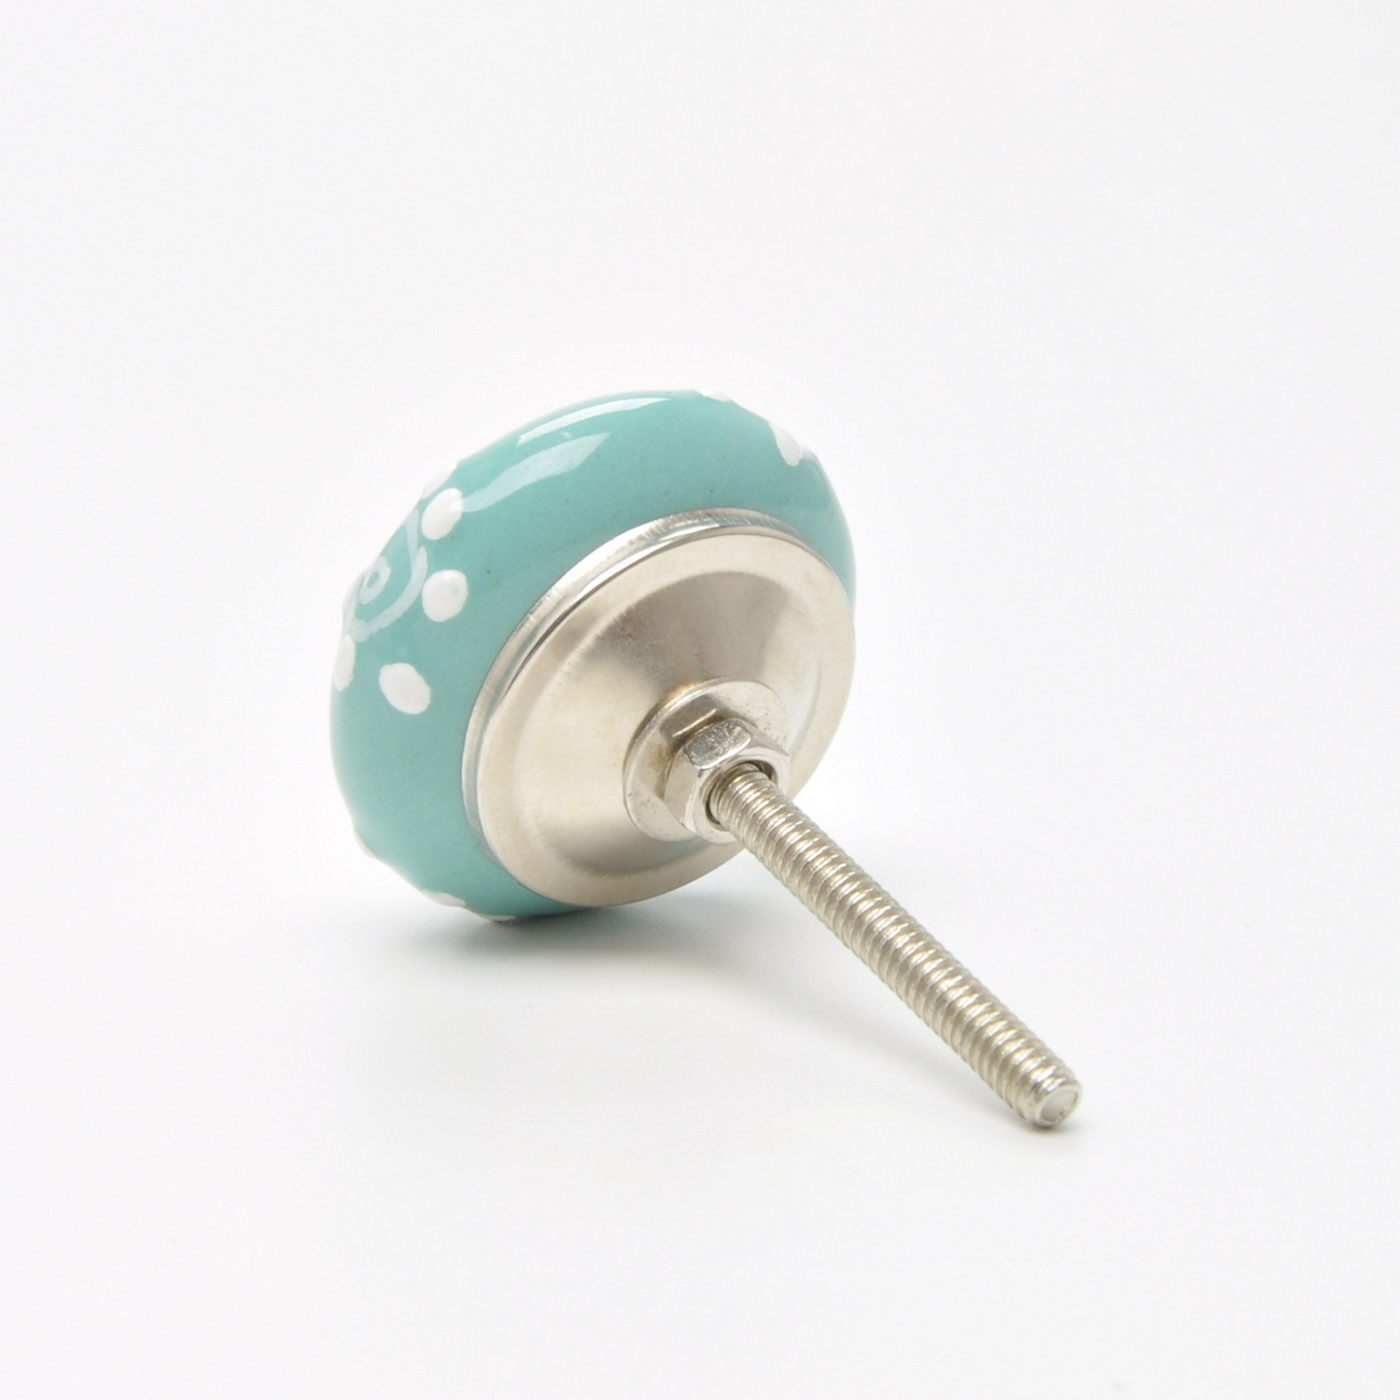 Green-Colour-Coloured-Knob-Pull-Handle-for-Cupboards-Doors-Cabinets-Drawer Indexbild 91